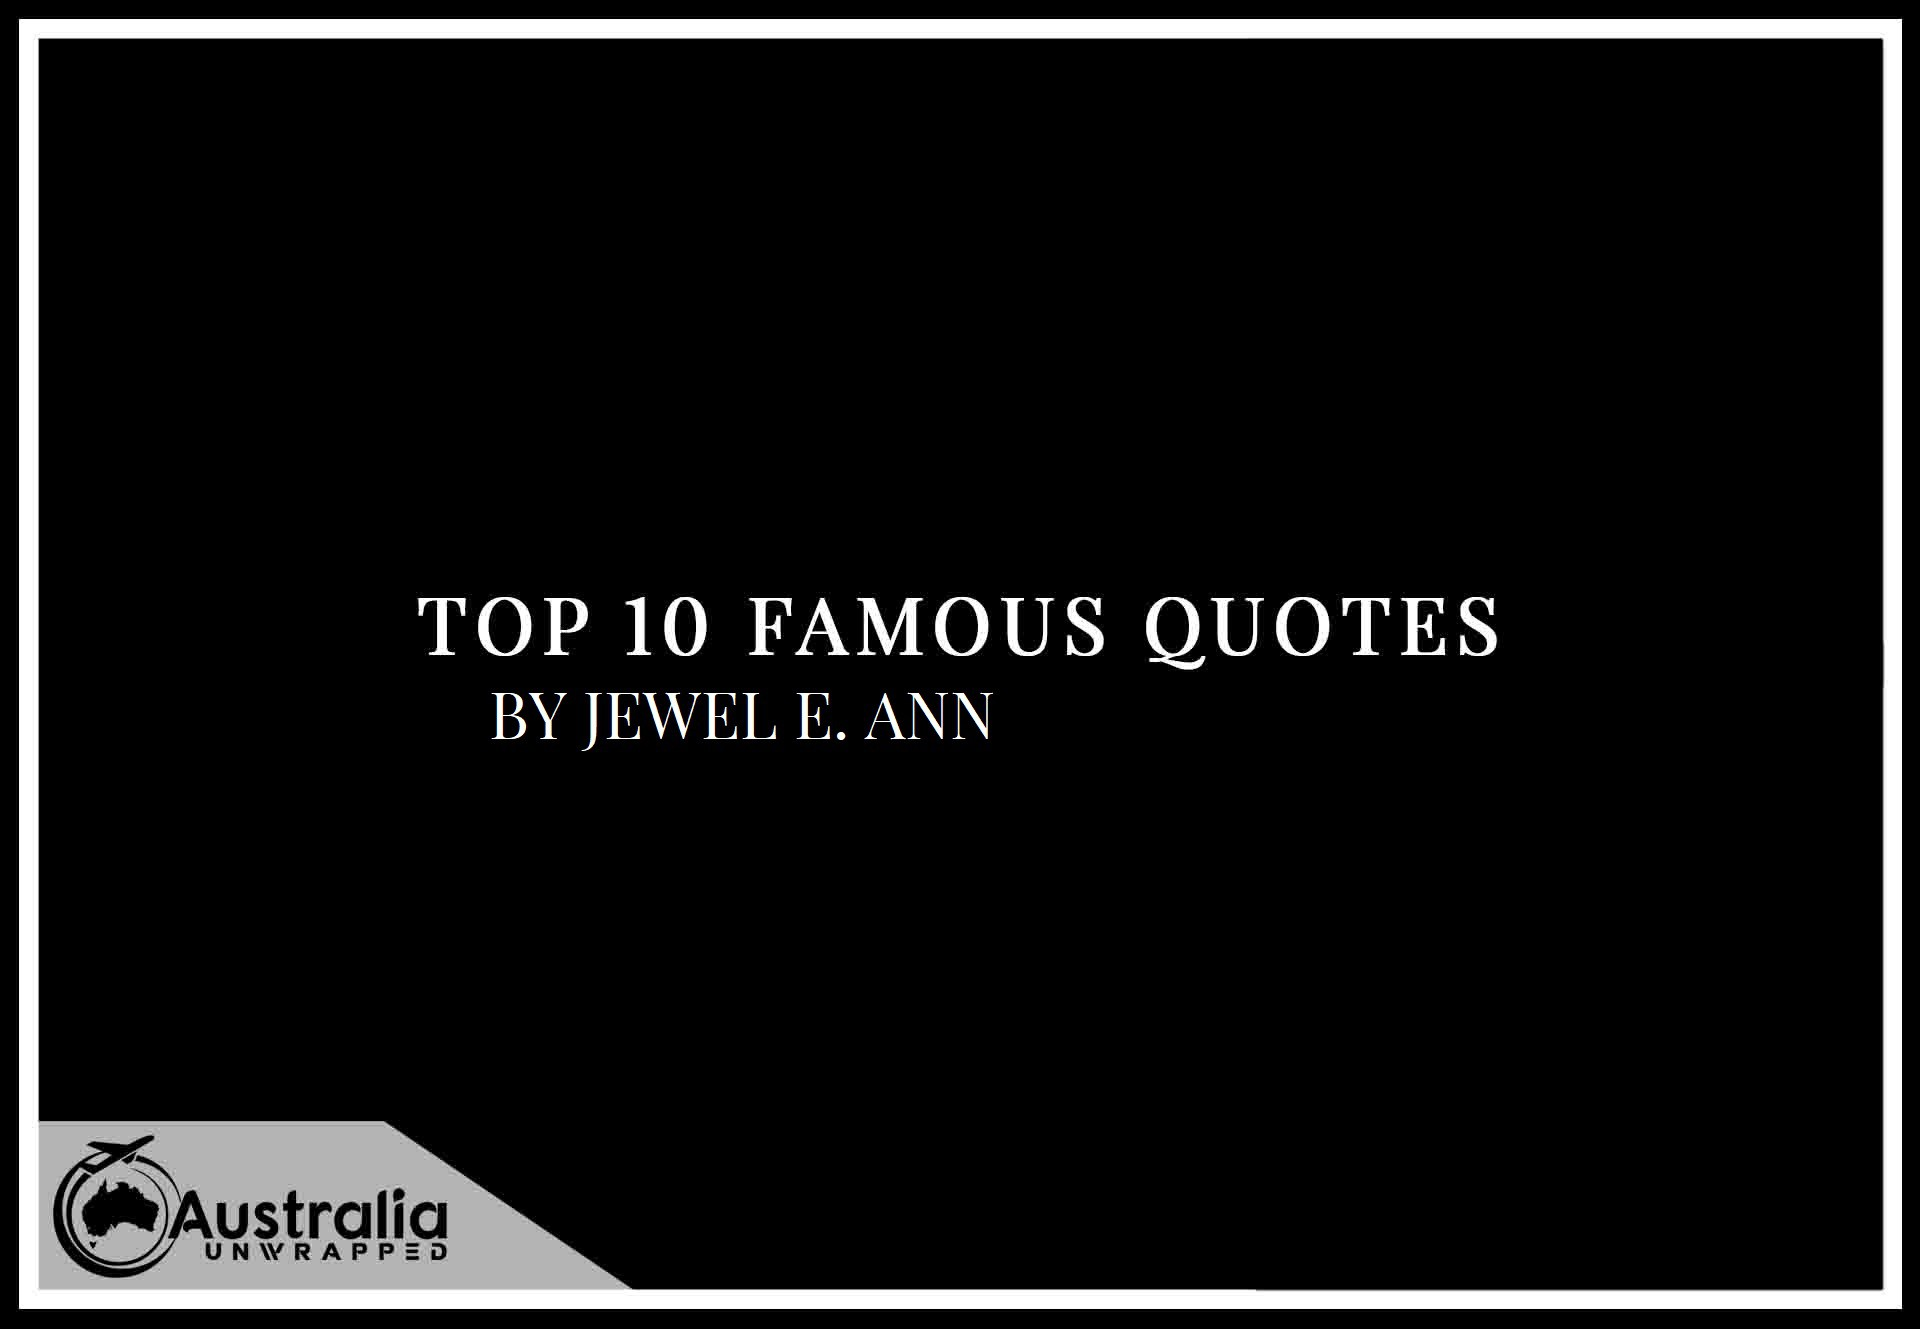 Top 10 Famous Quotes by Author Jewel E. Ann